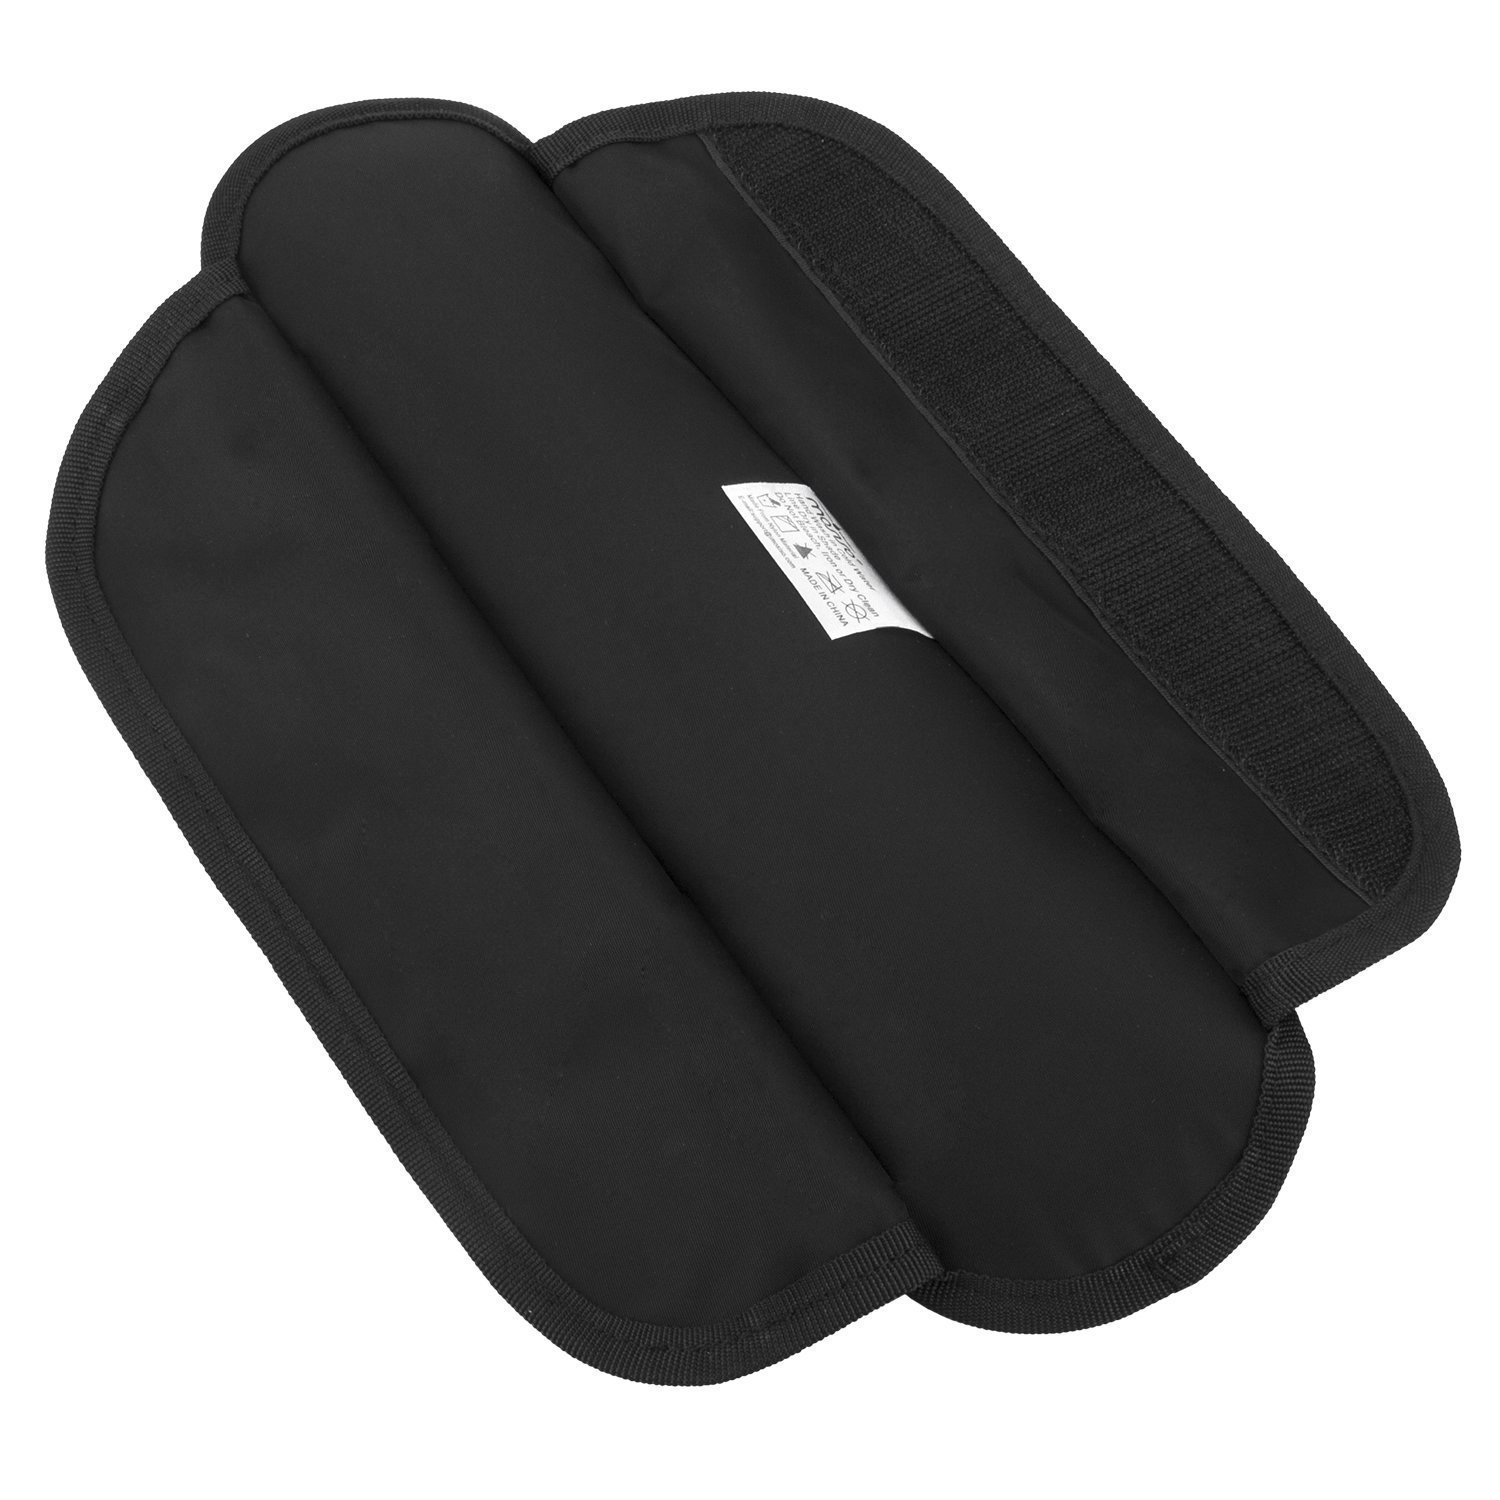 Mosiso Memory Shoulder Replacement Comfortable Image 3